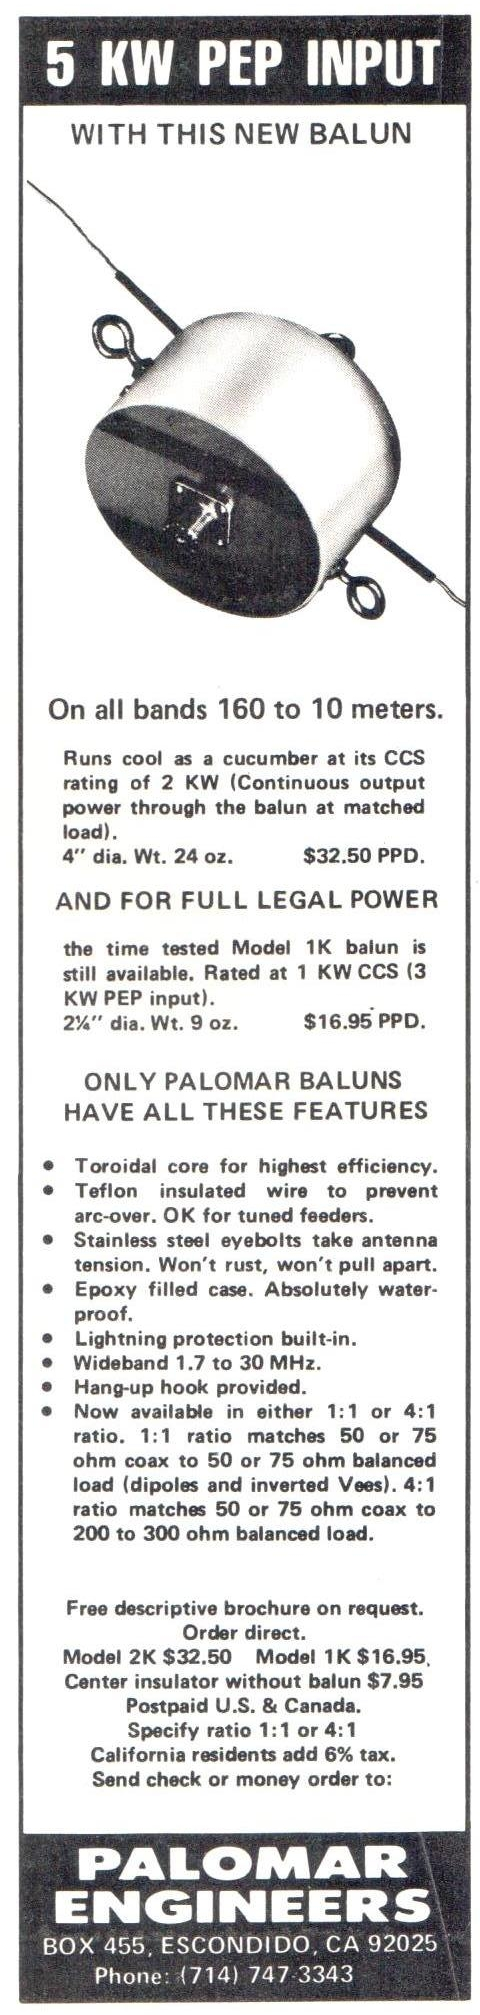 1K and 2K Balun Ad CQ 1977 Cropped